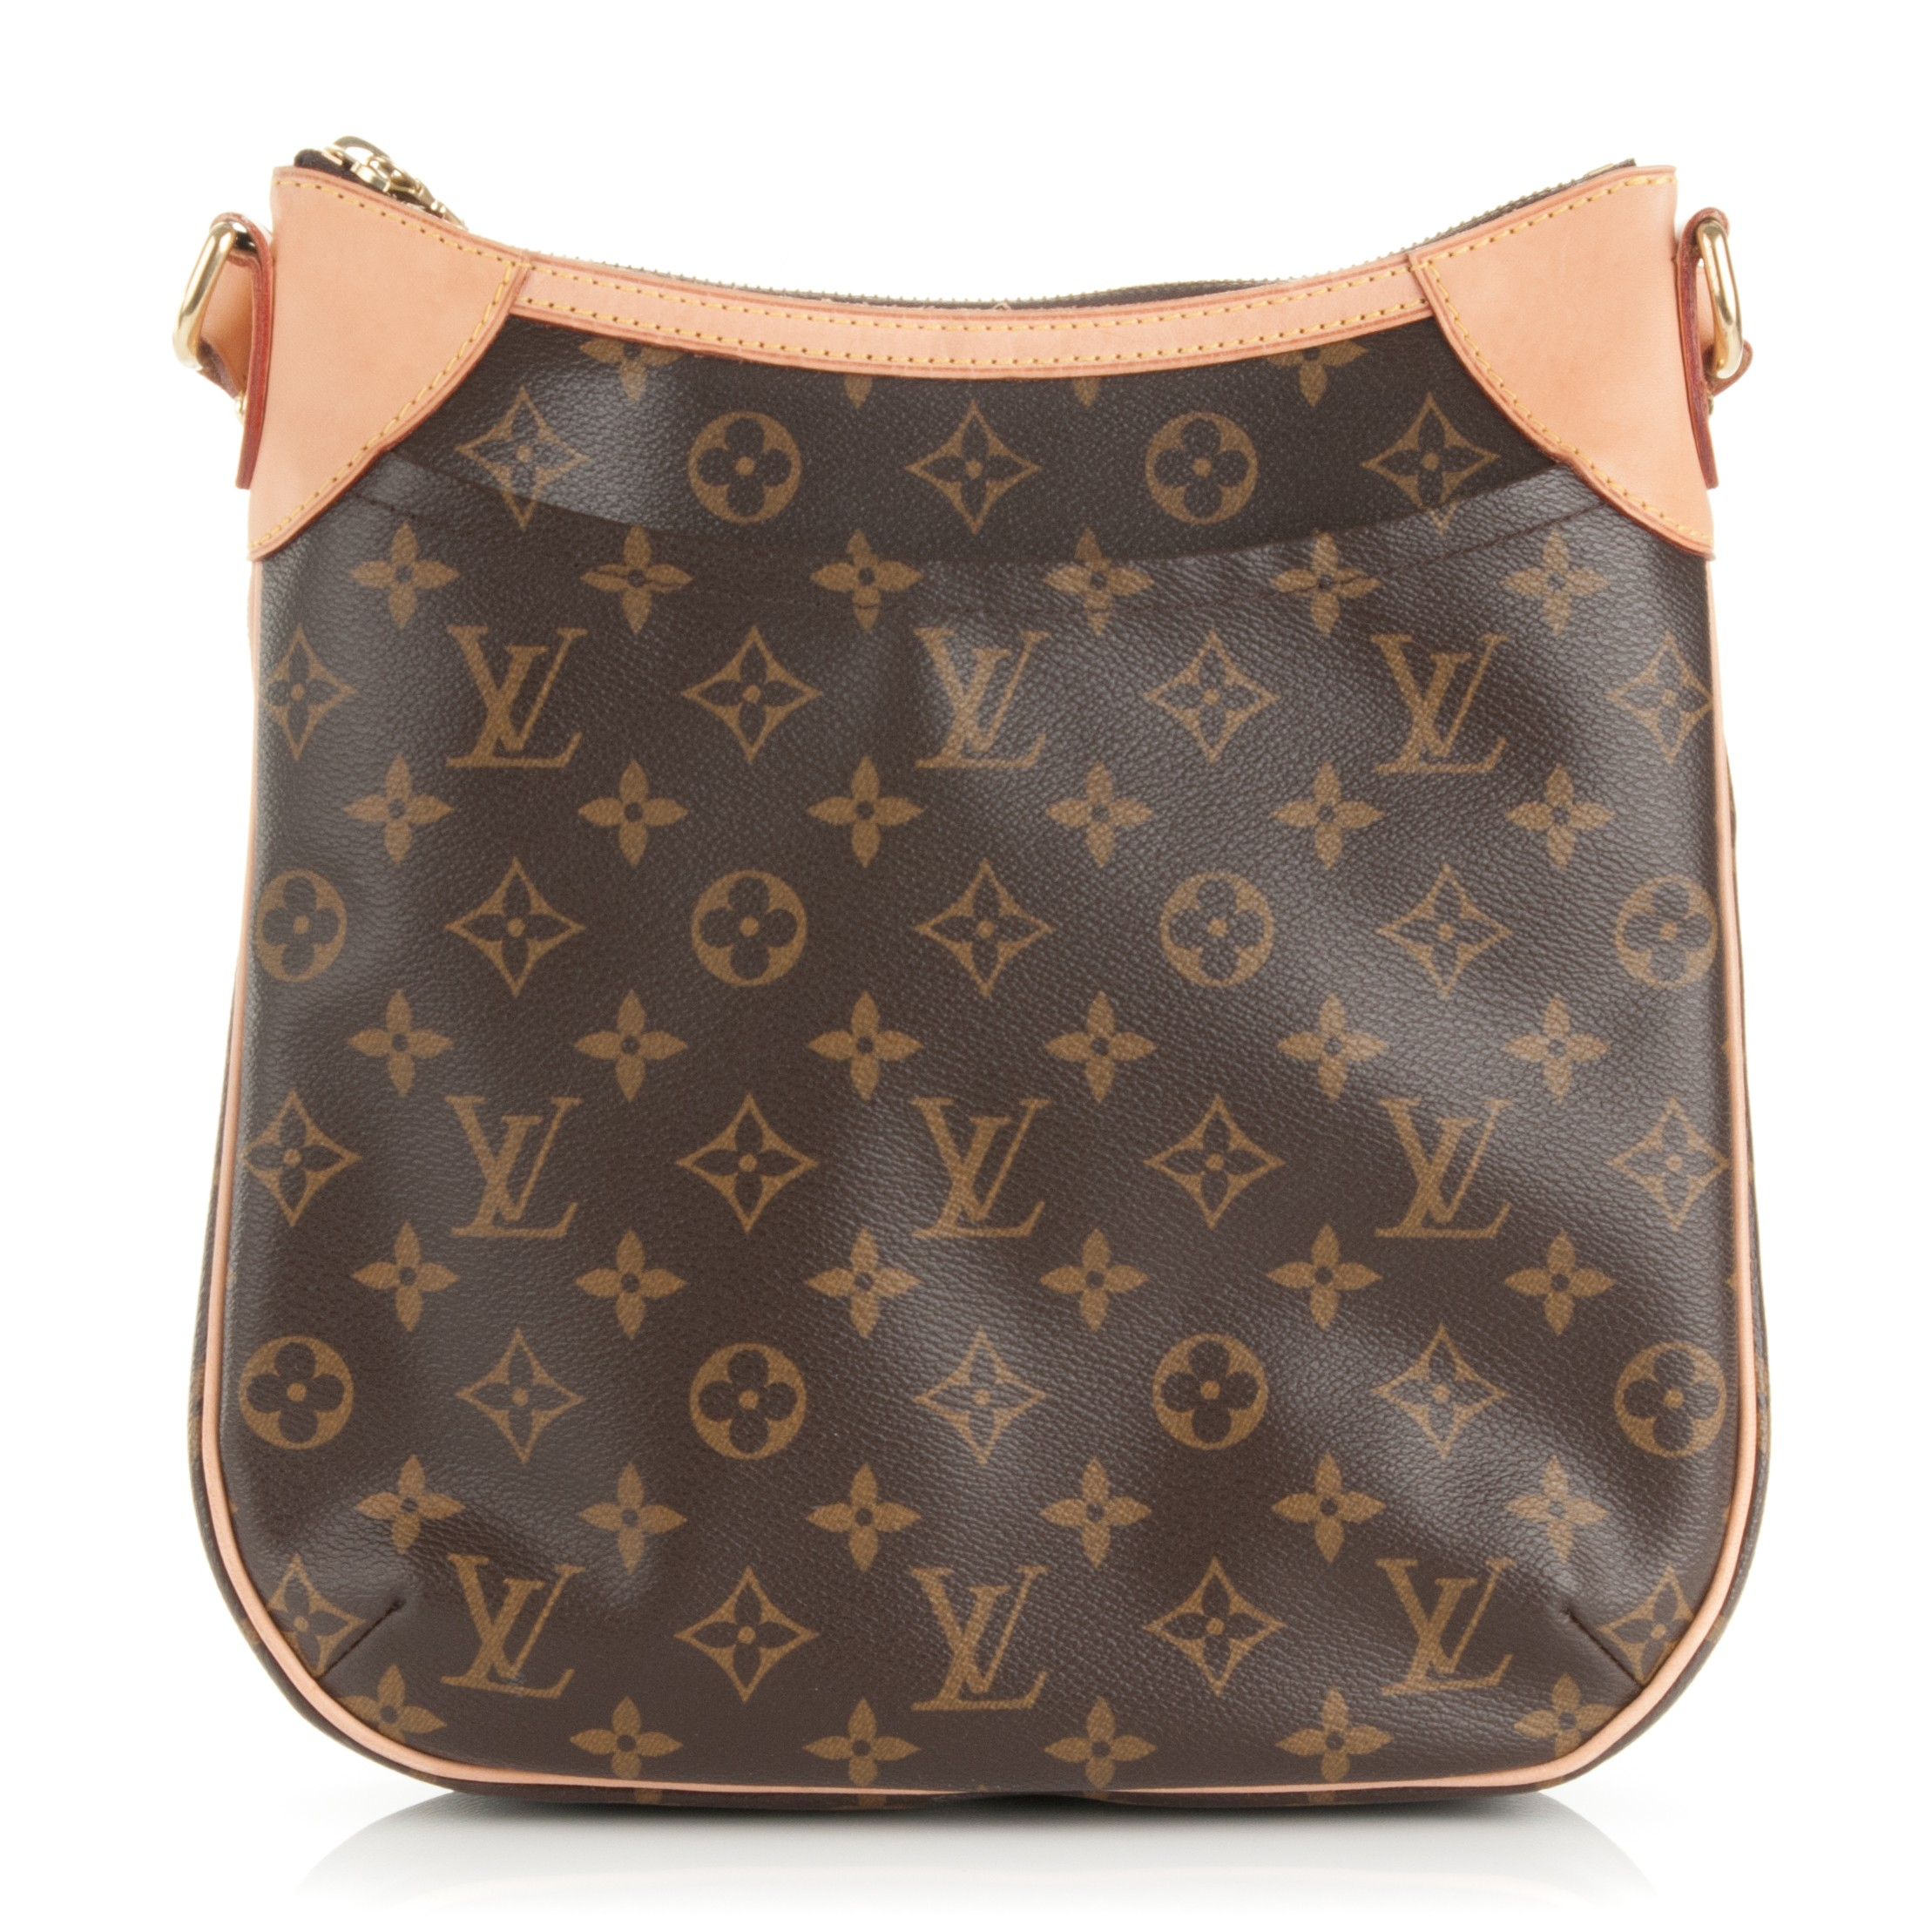 2c3d82c90e06 LOUIS VUITTON Monogram Odeon PM 175618